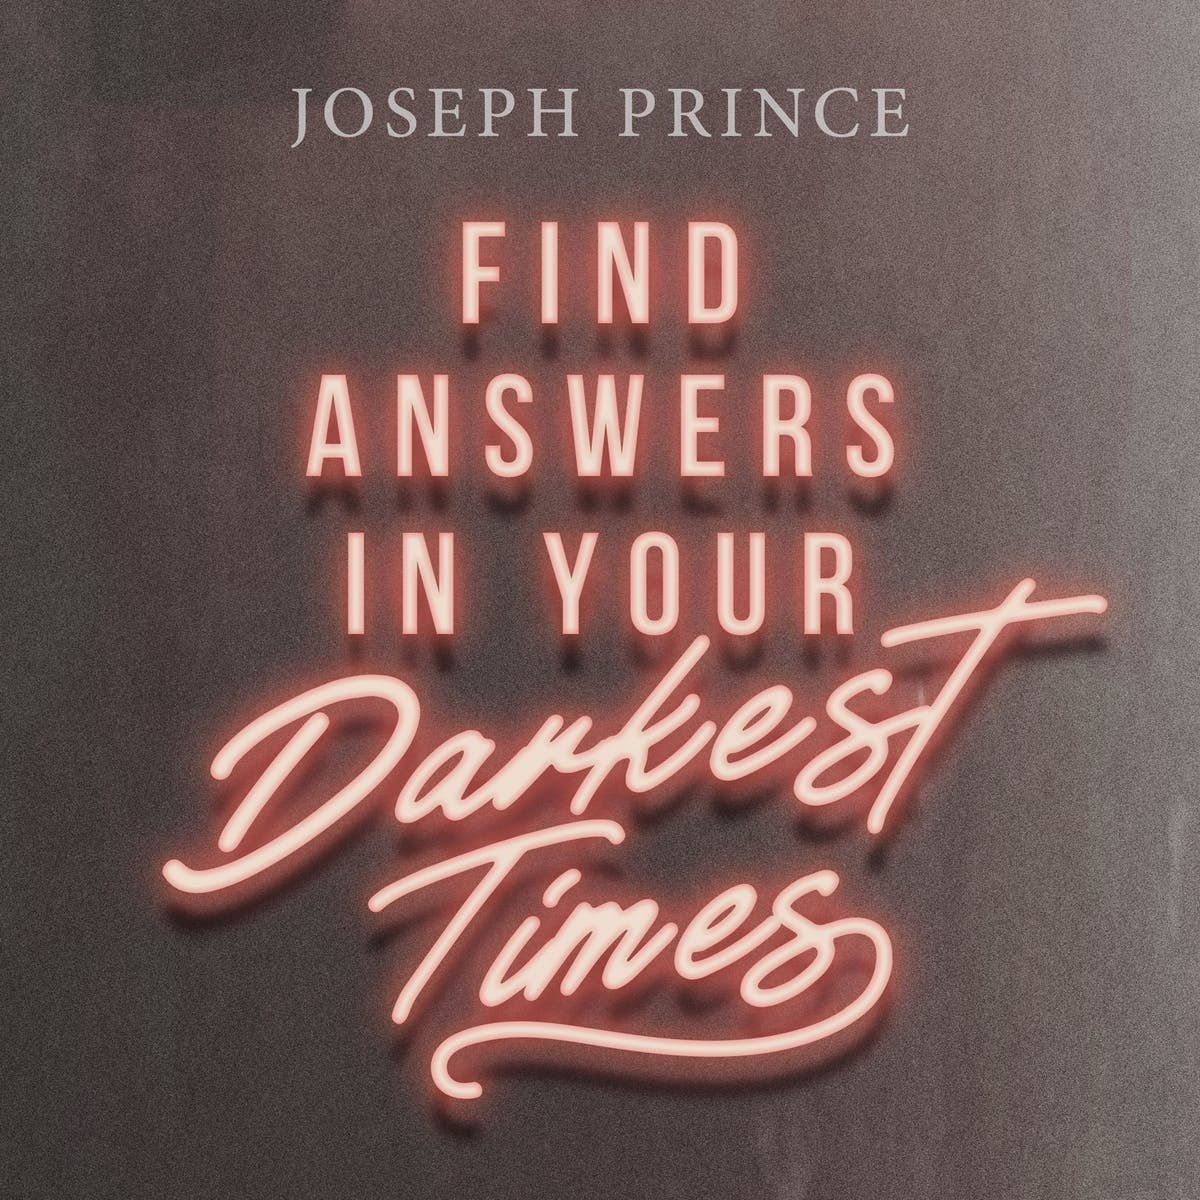 Find Answers In Your Darkest Times | Official Joseph Prince